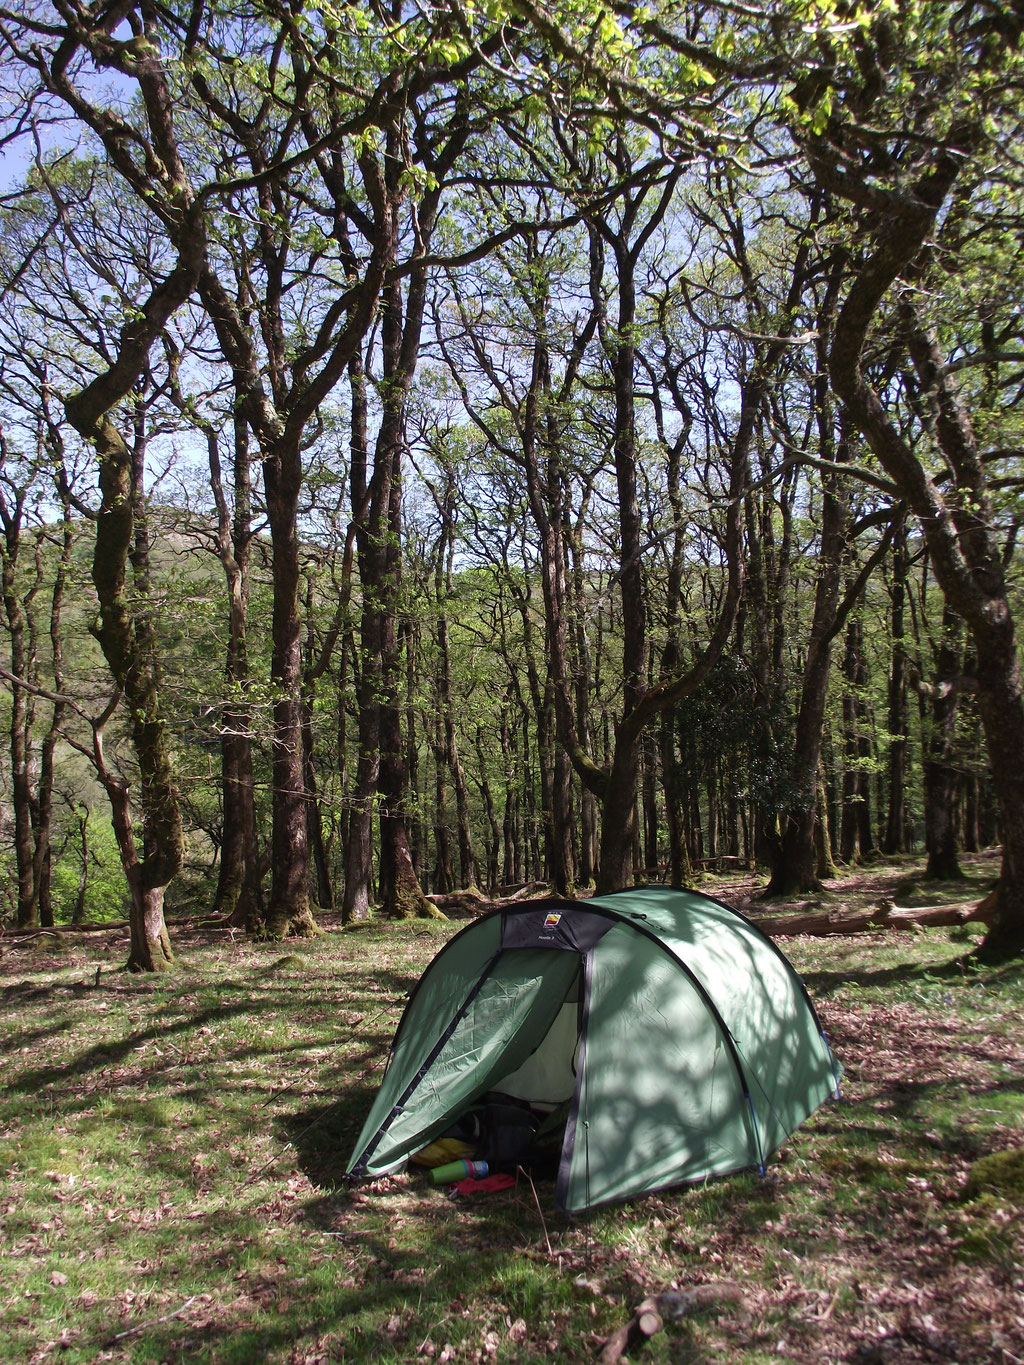 Camping, Dartmoor, Devon, England, UK